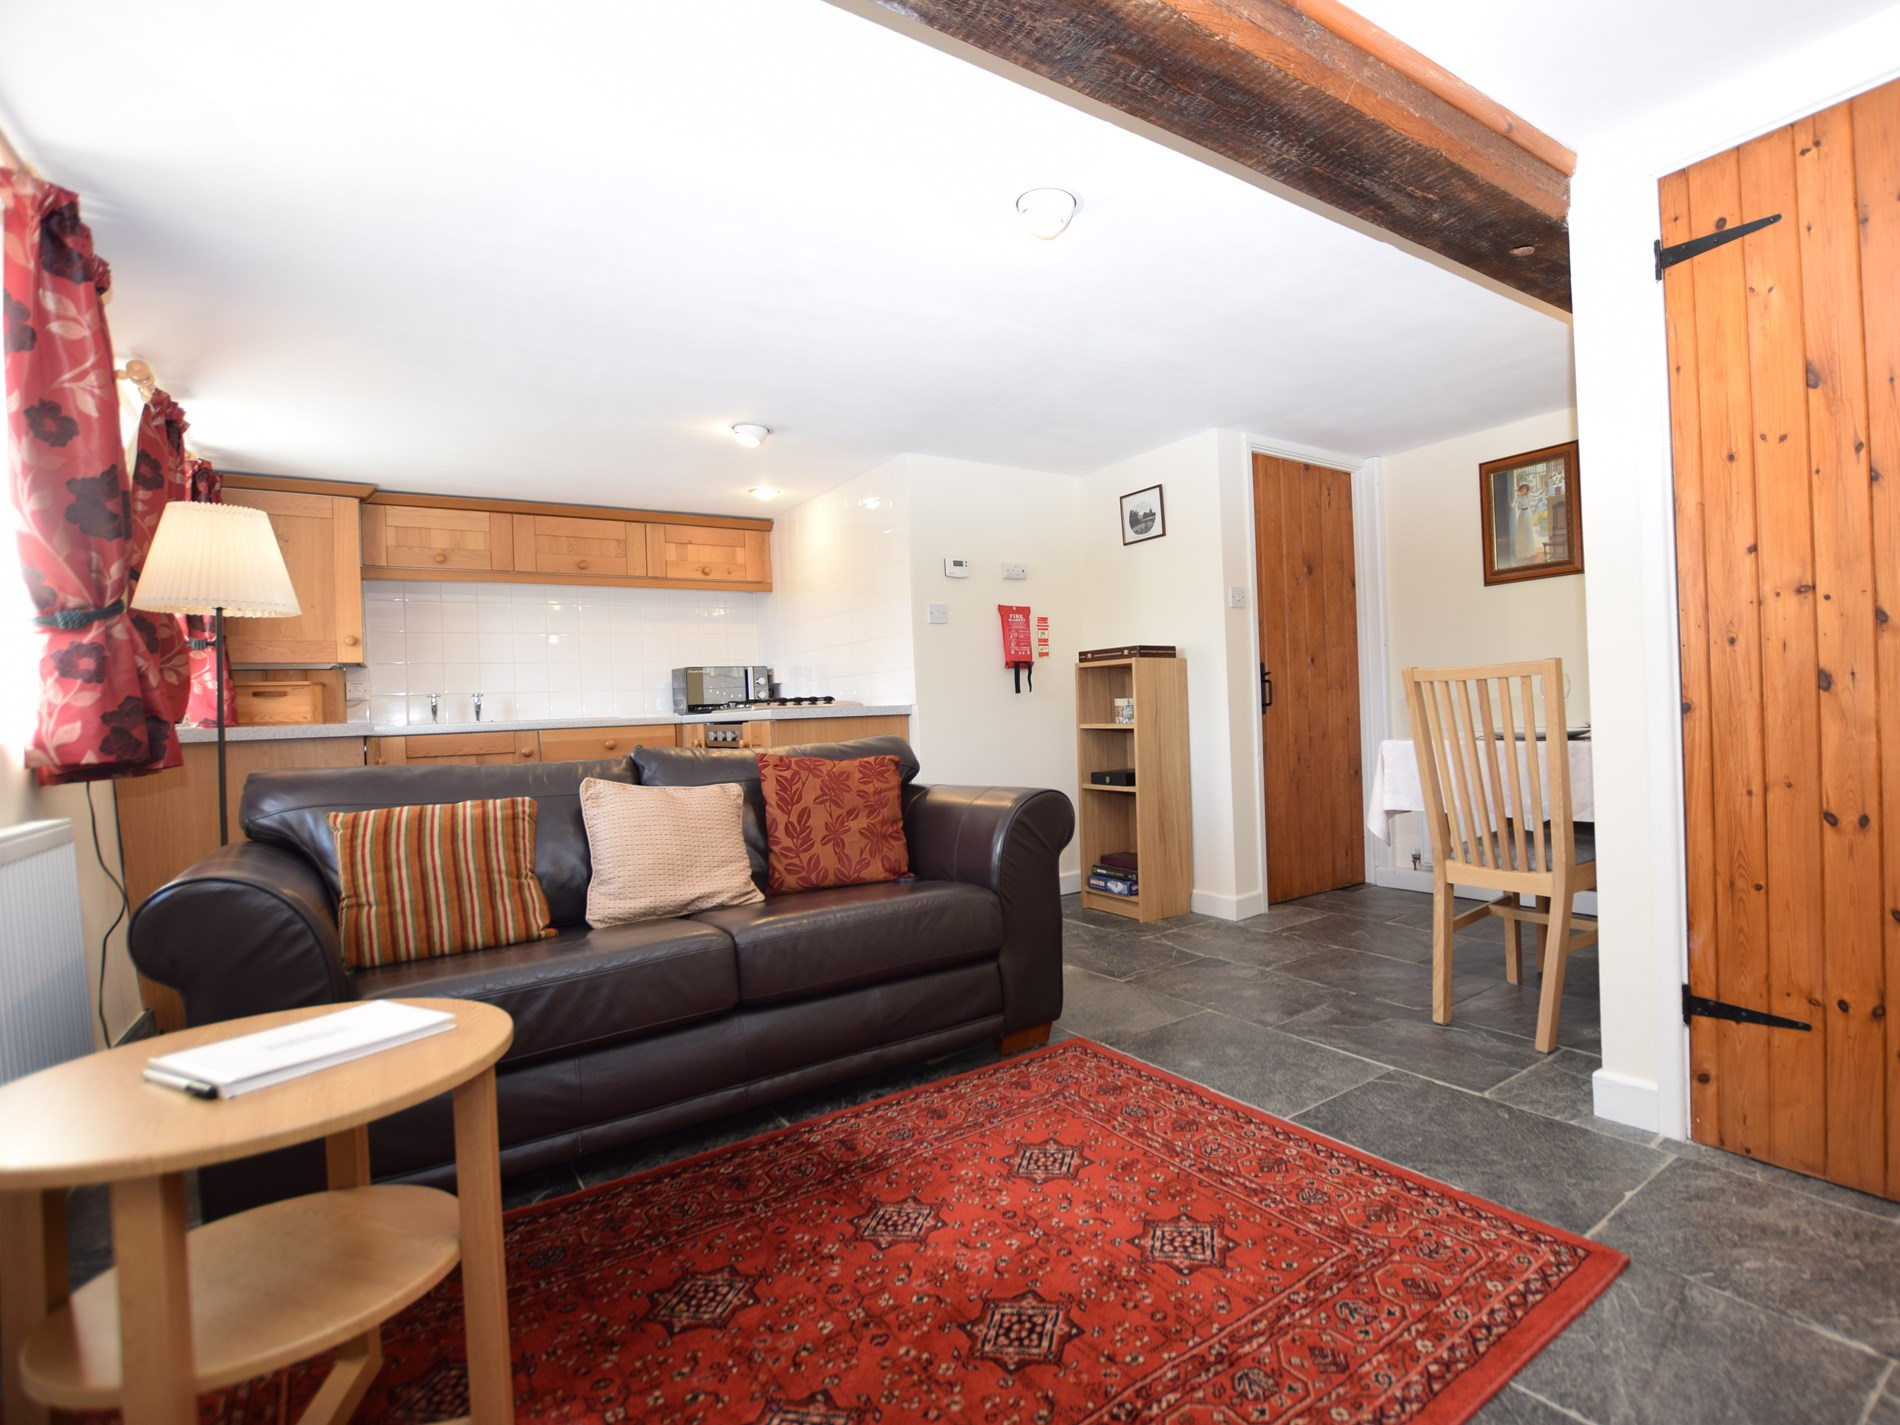 1 Bedroom Cottage in Llanidloes, Mid Wales